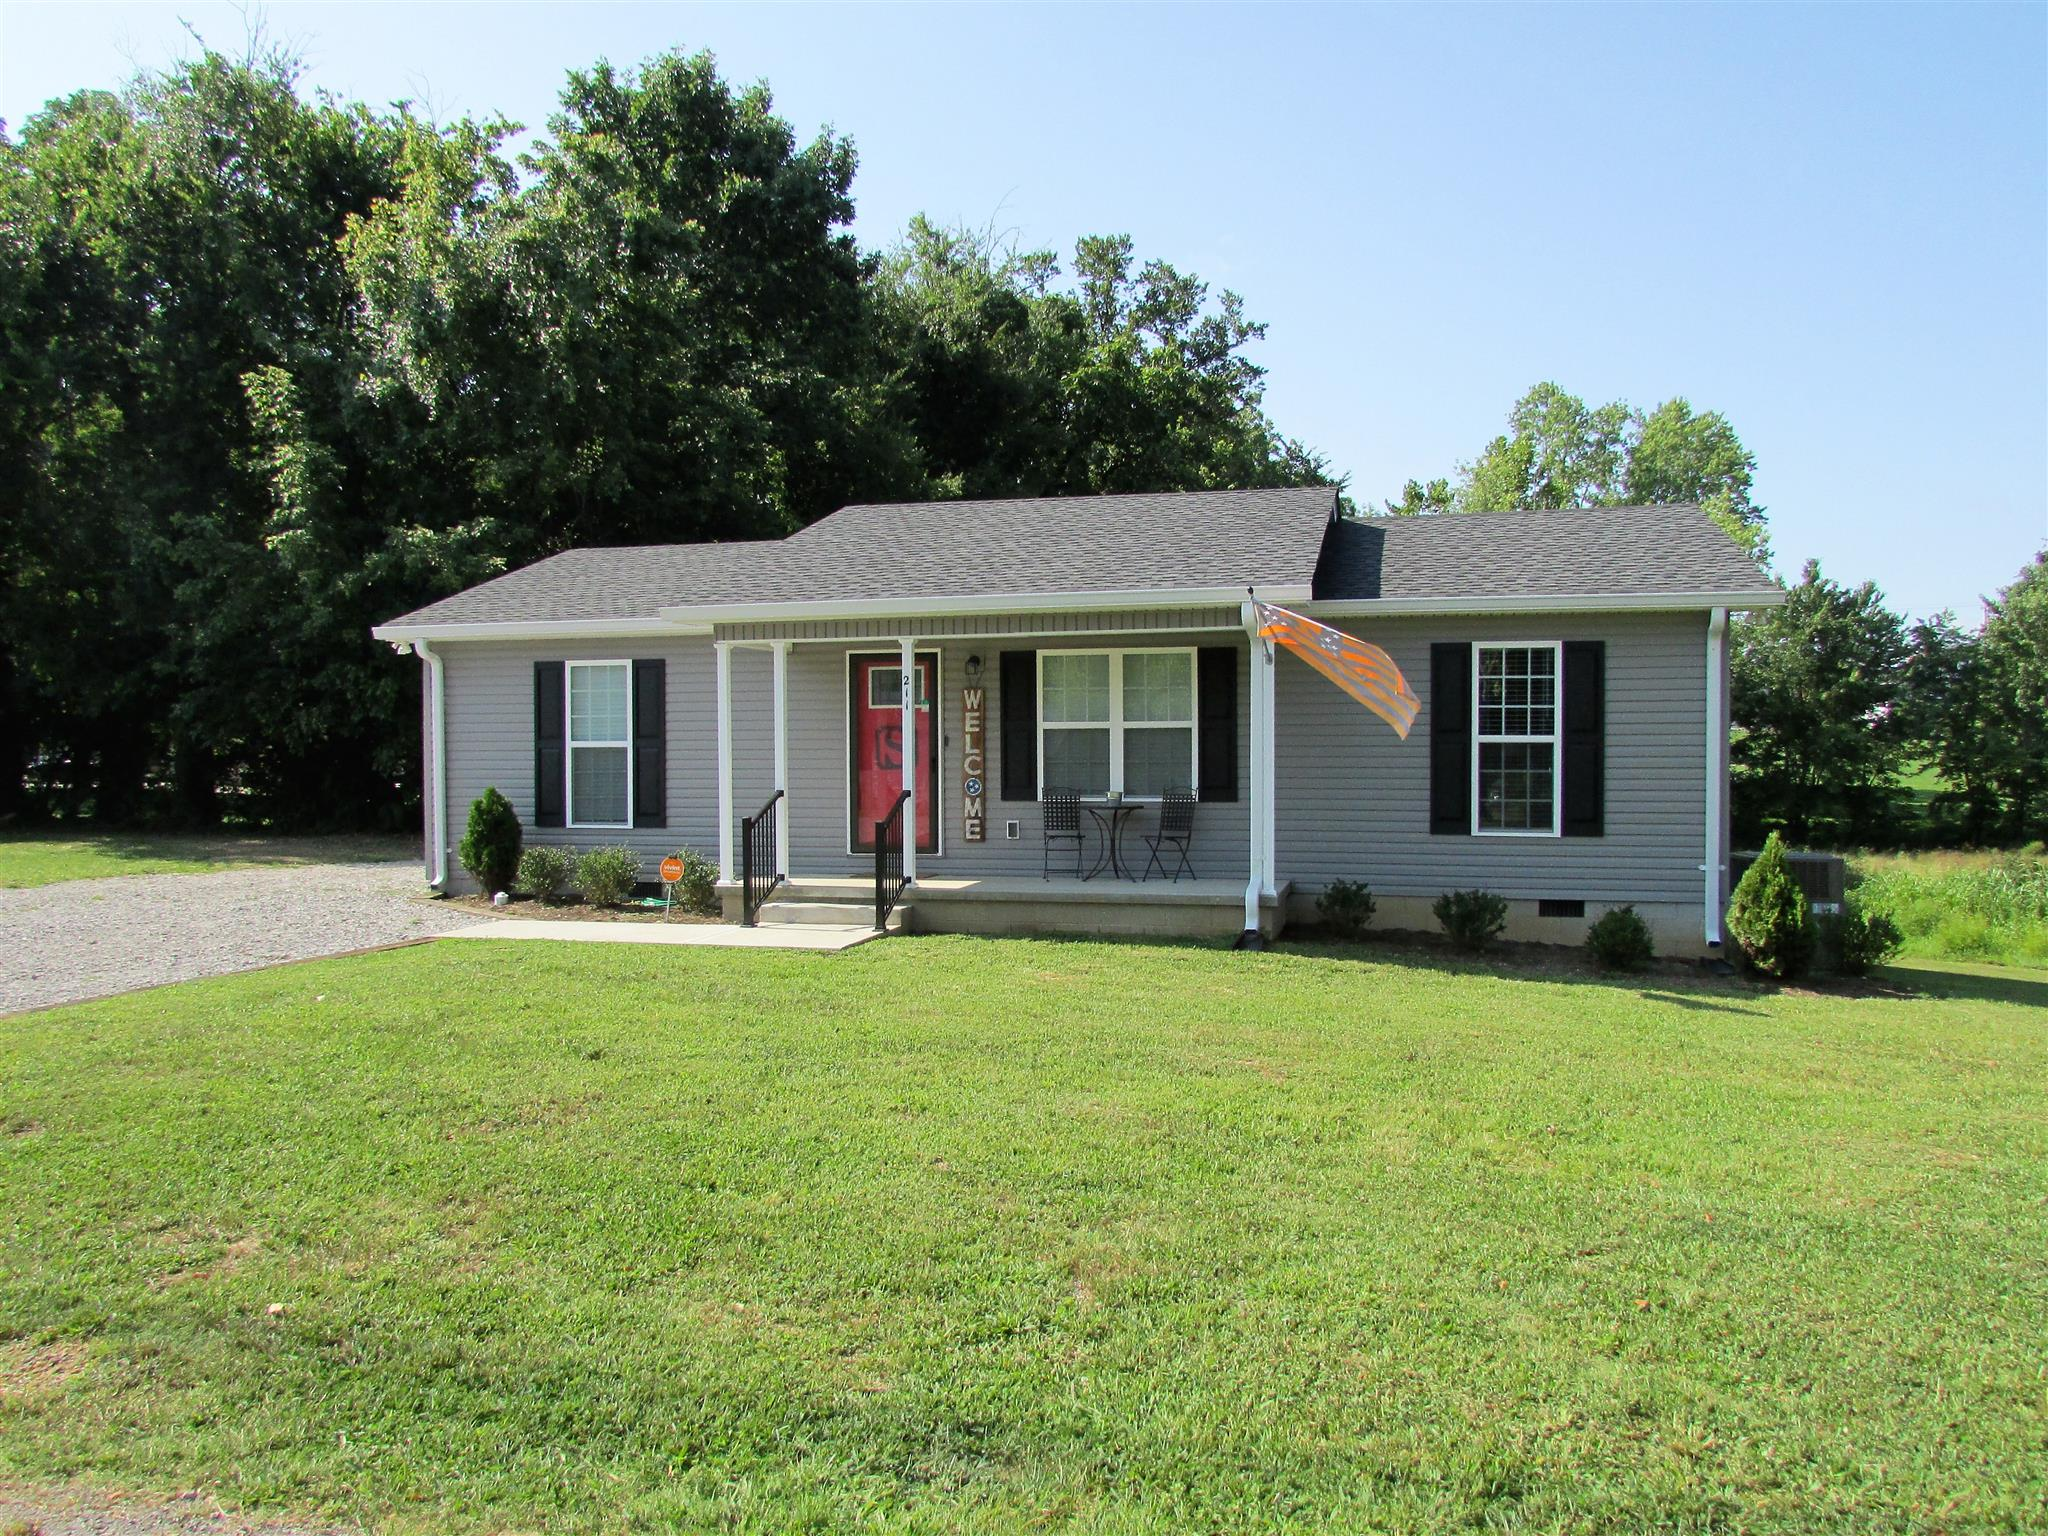 211 Yankee St, McMinnville, TN 37110 - McMinnville, TN real estate listing